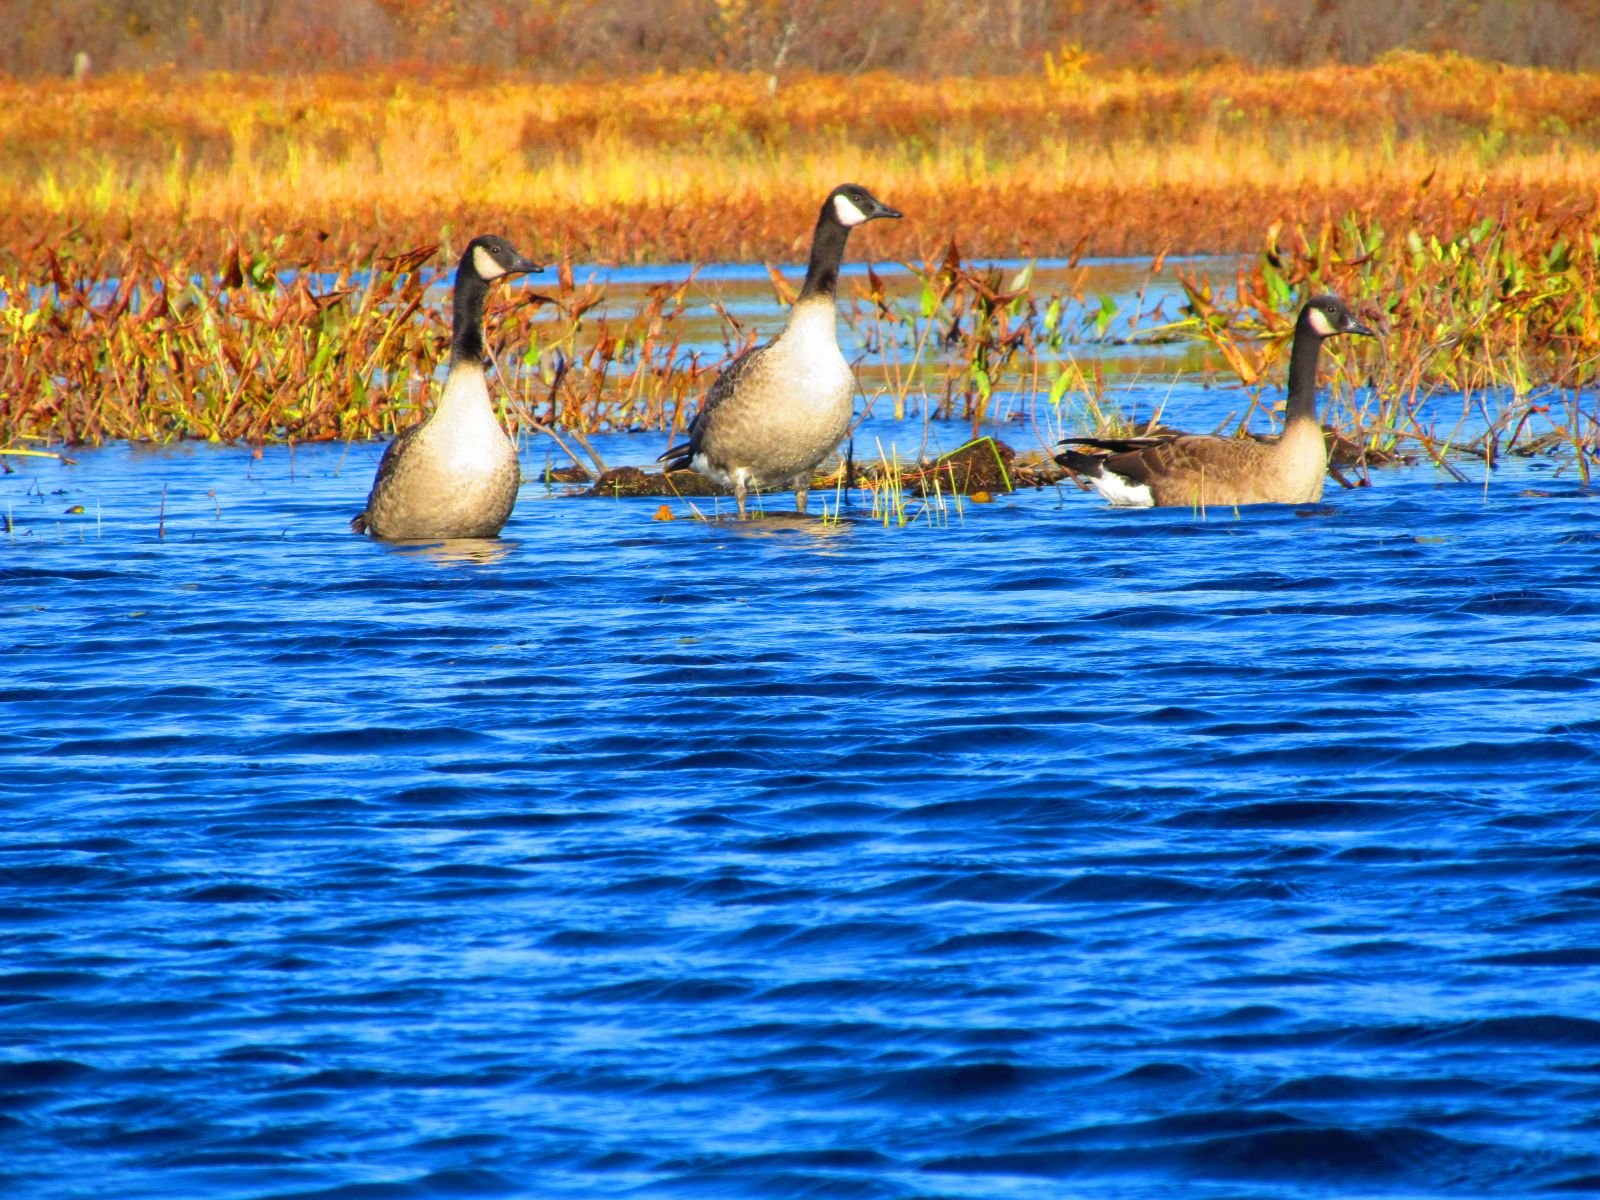 Canadian Geese - I know they make a mess!